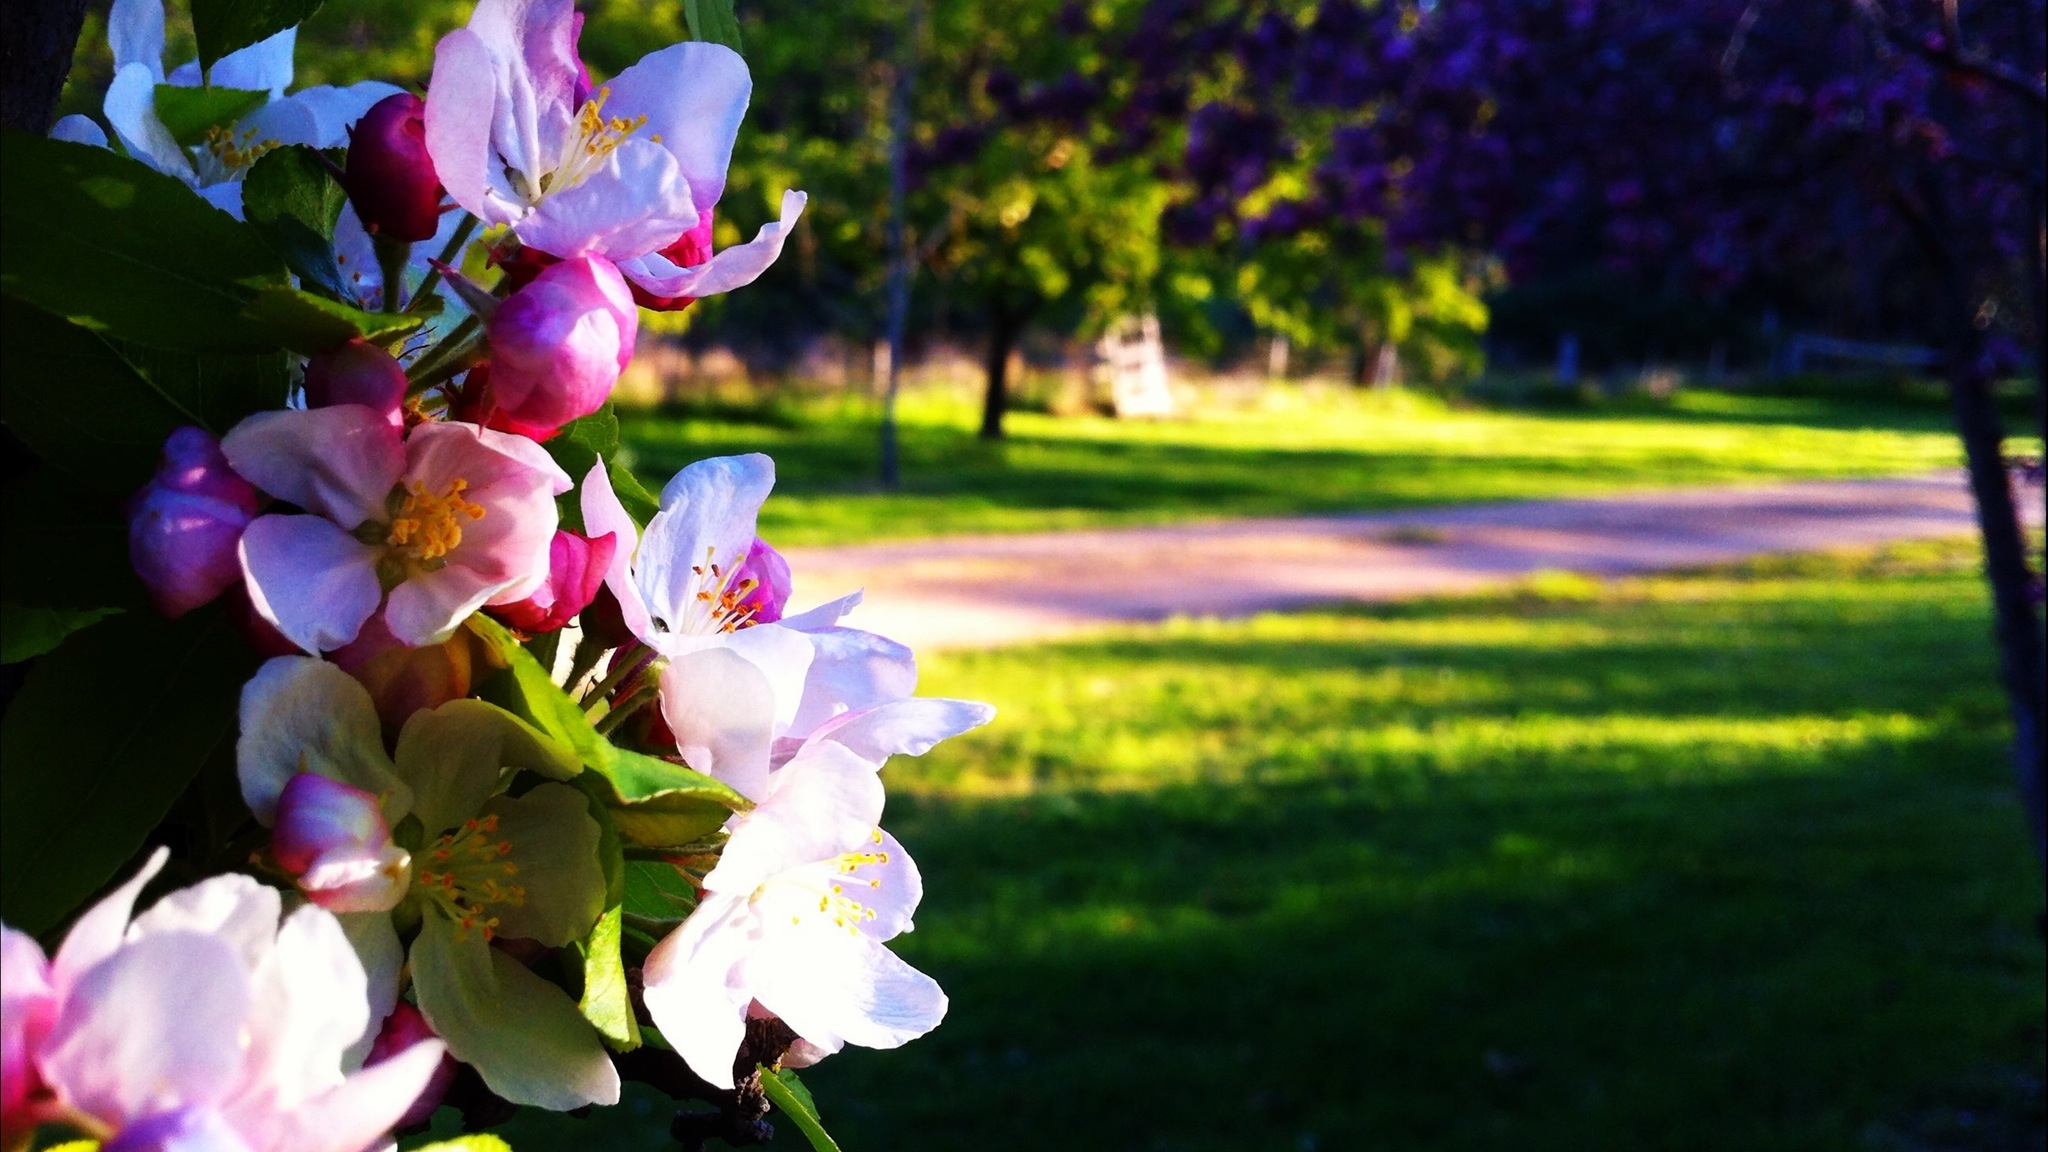 "alt=""fresh spring blossom in the foreground with green lawns in the background"""